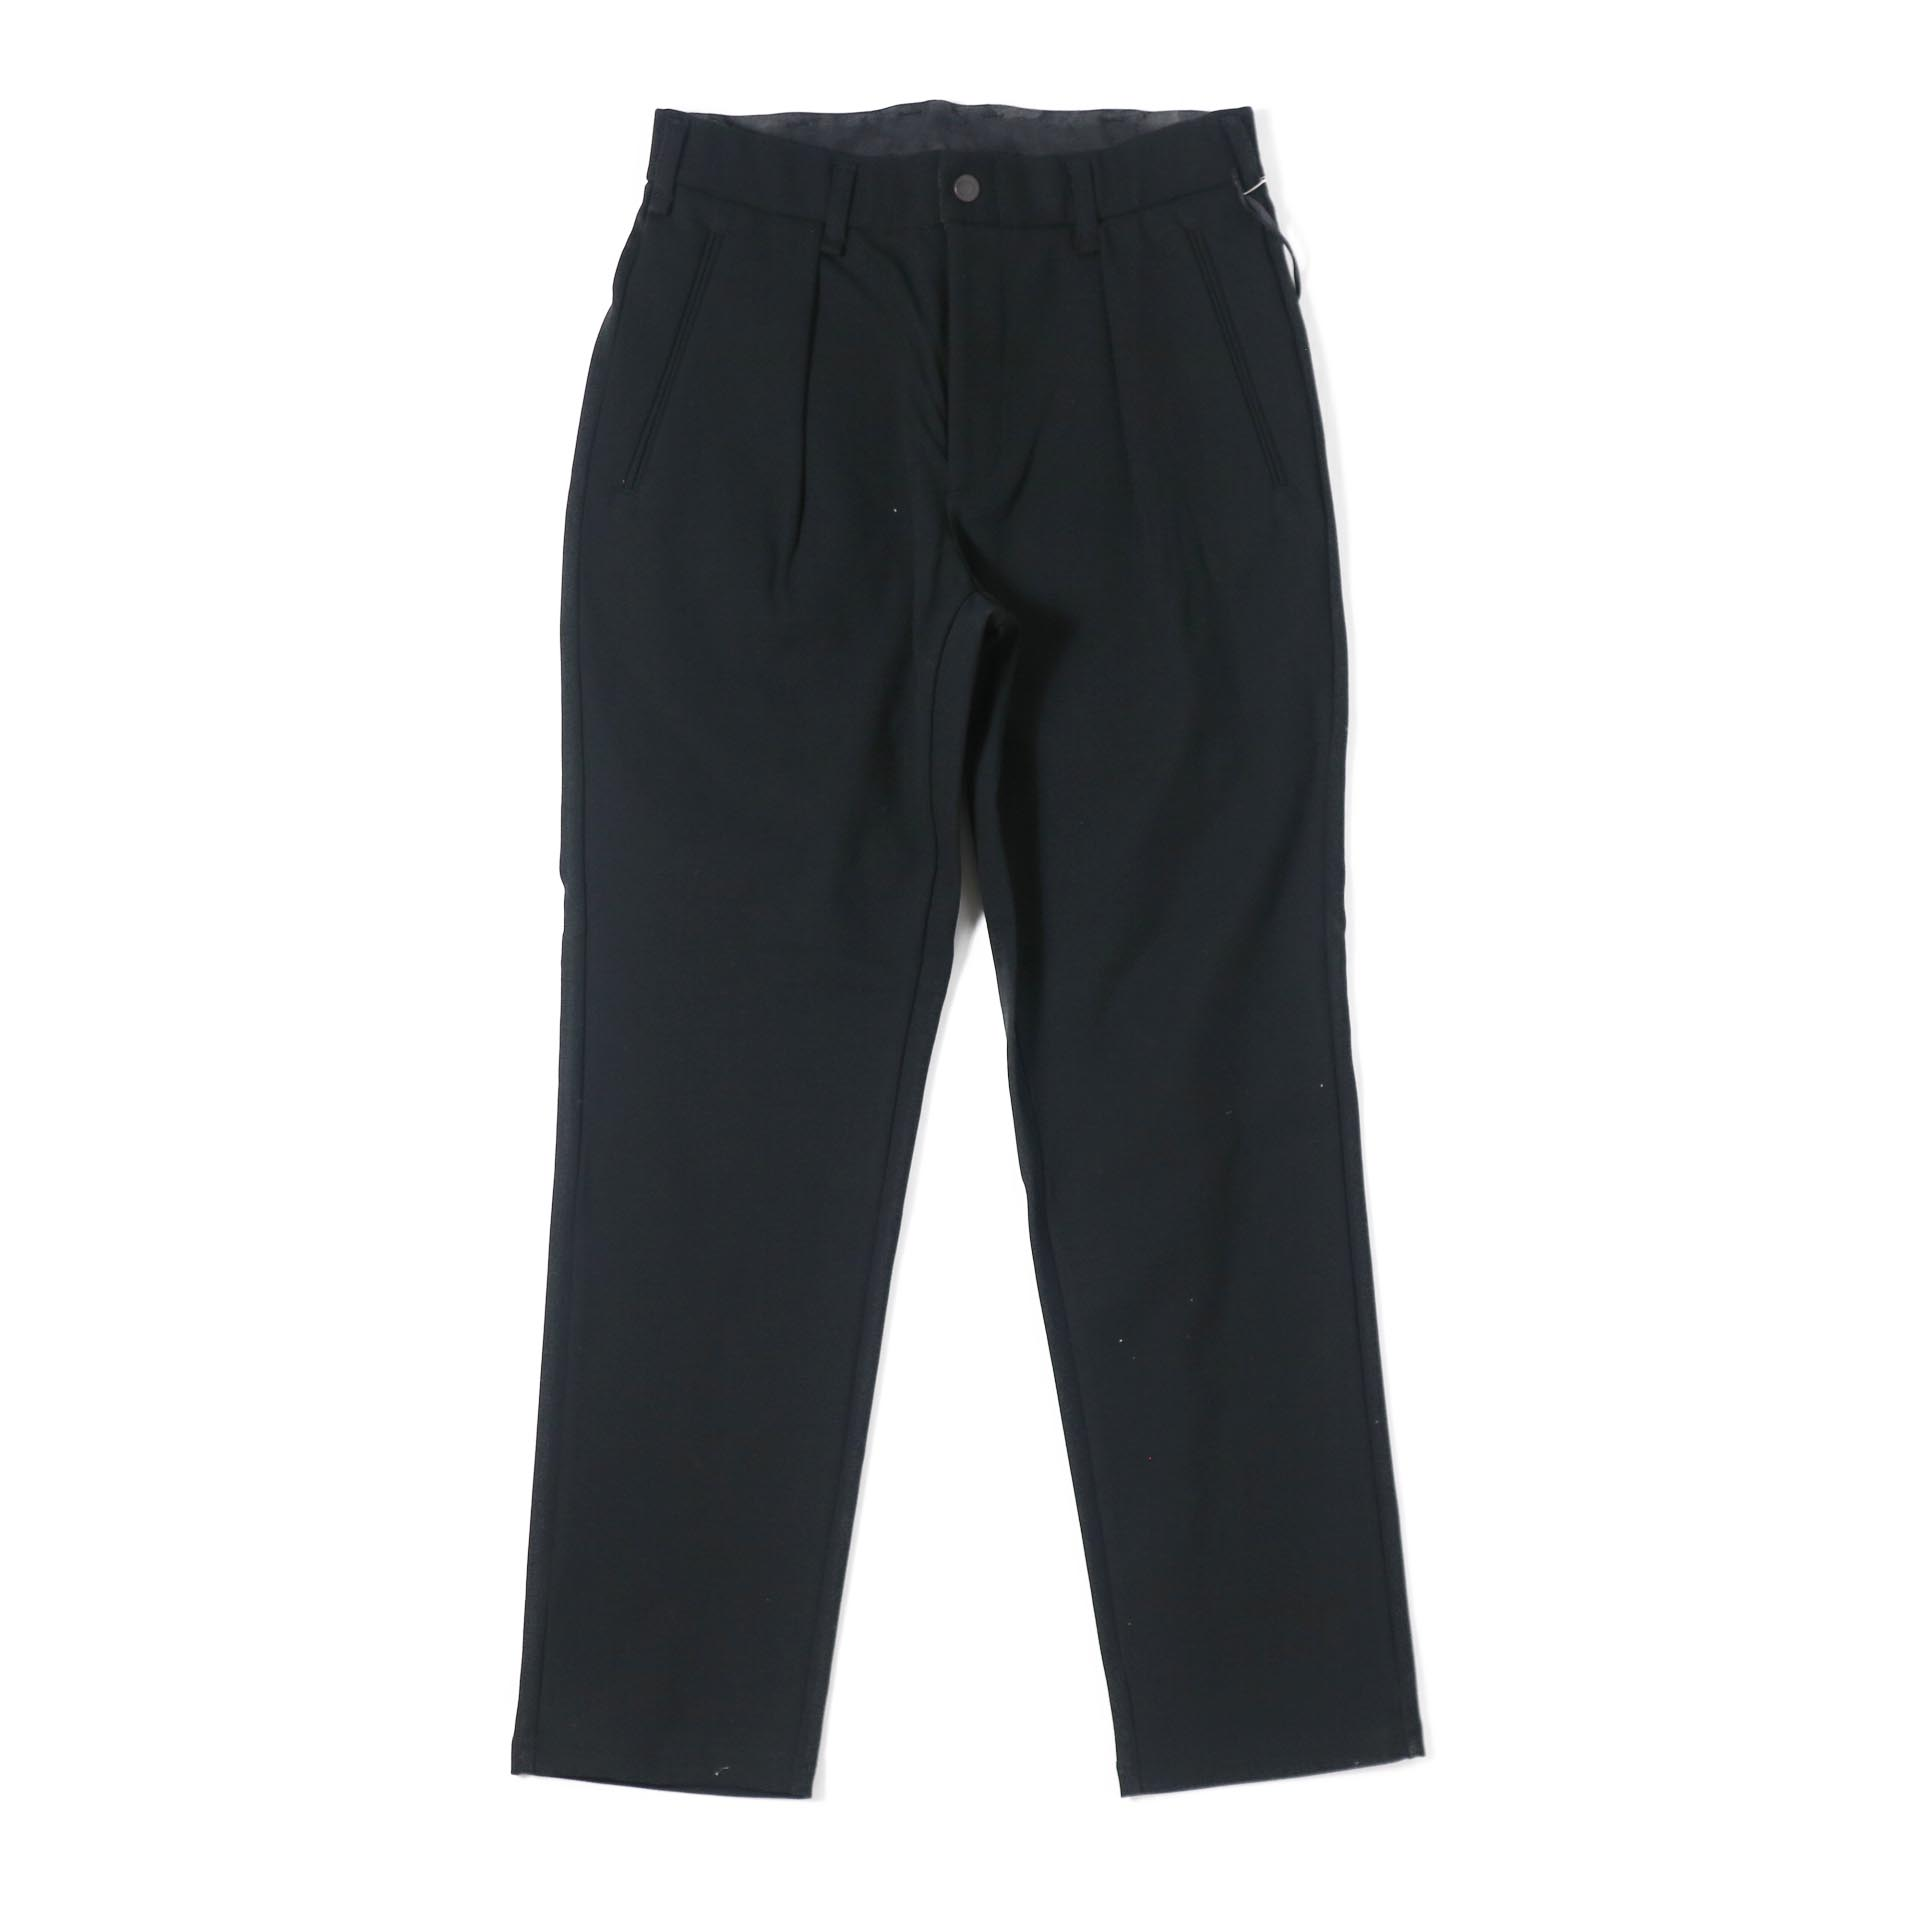 CURLY / HOXTON TROUSERS -BLACK